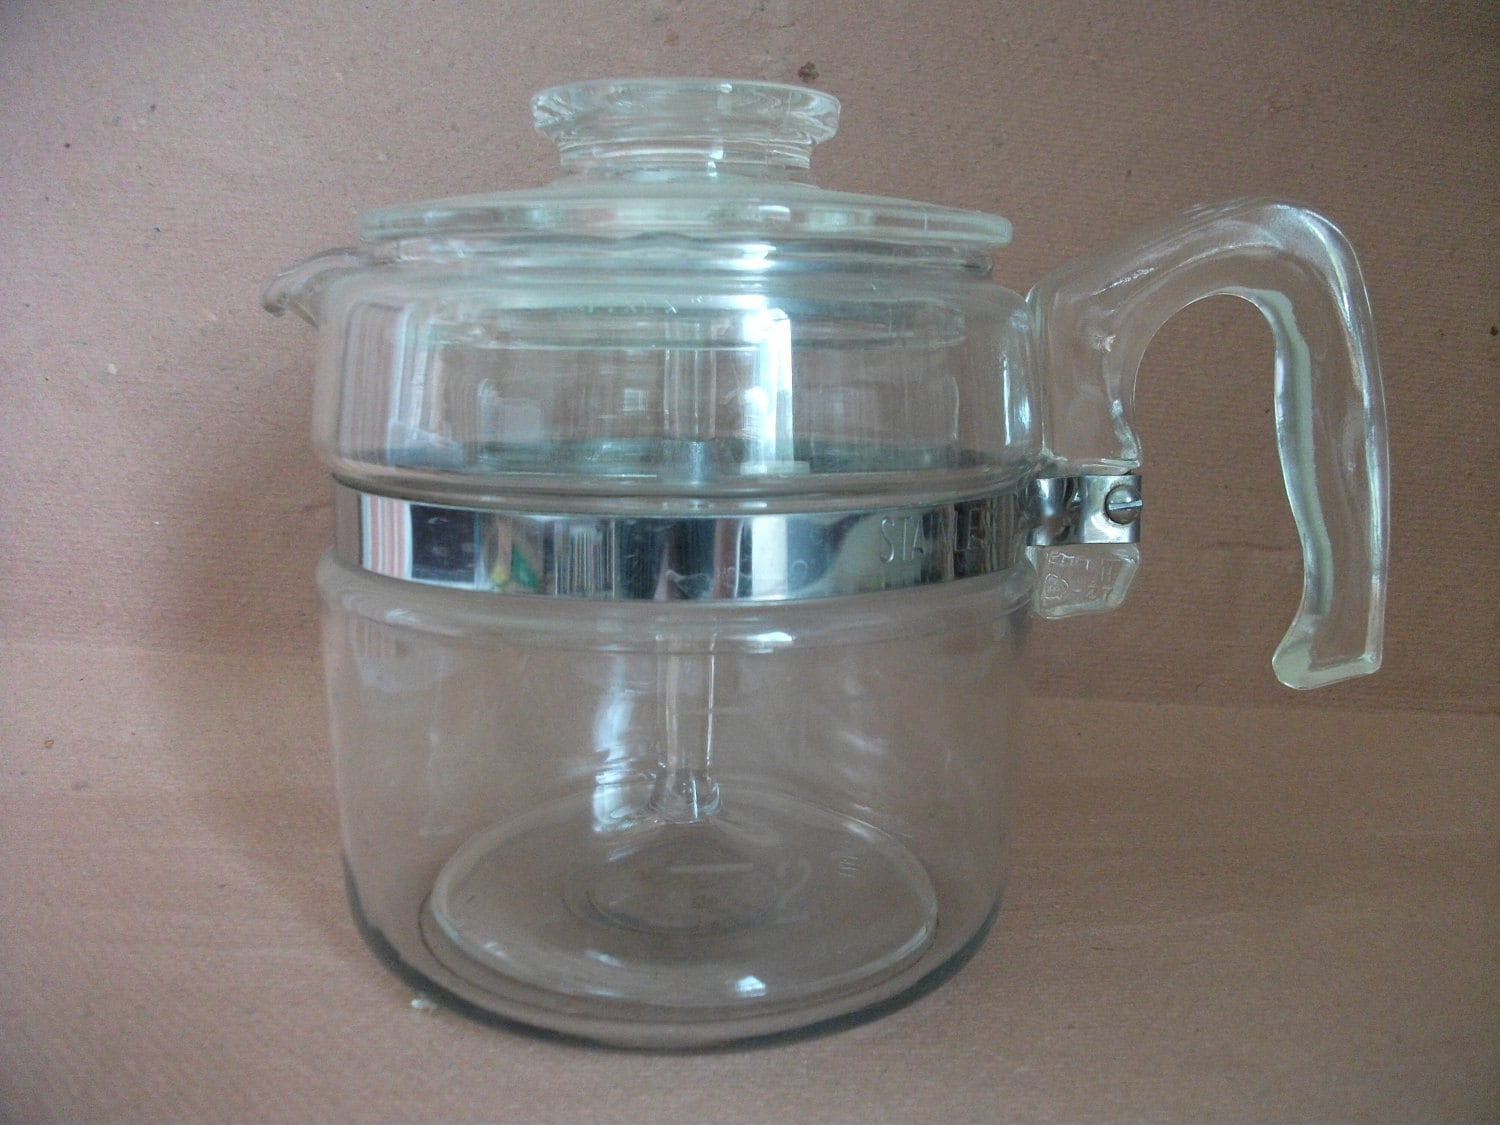 Pyrex Coffee Maker How To Use : Classic Vintage Glass PYREX PERCOLATOR Coffee Maker 4-Cup